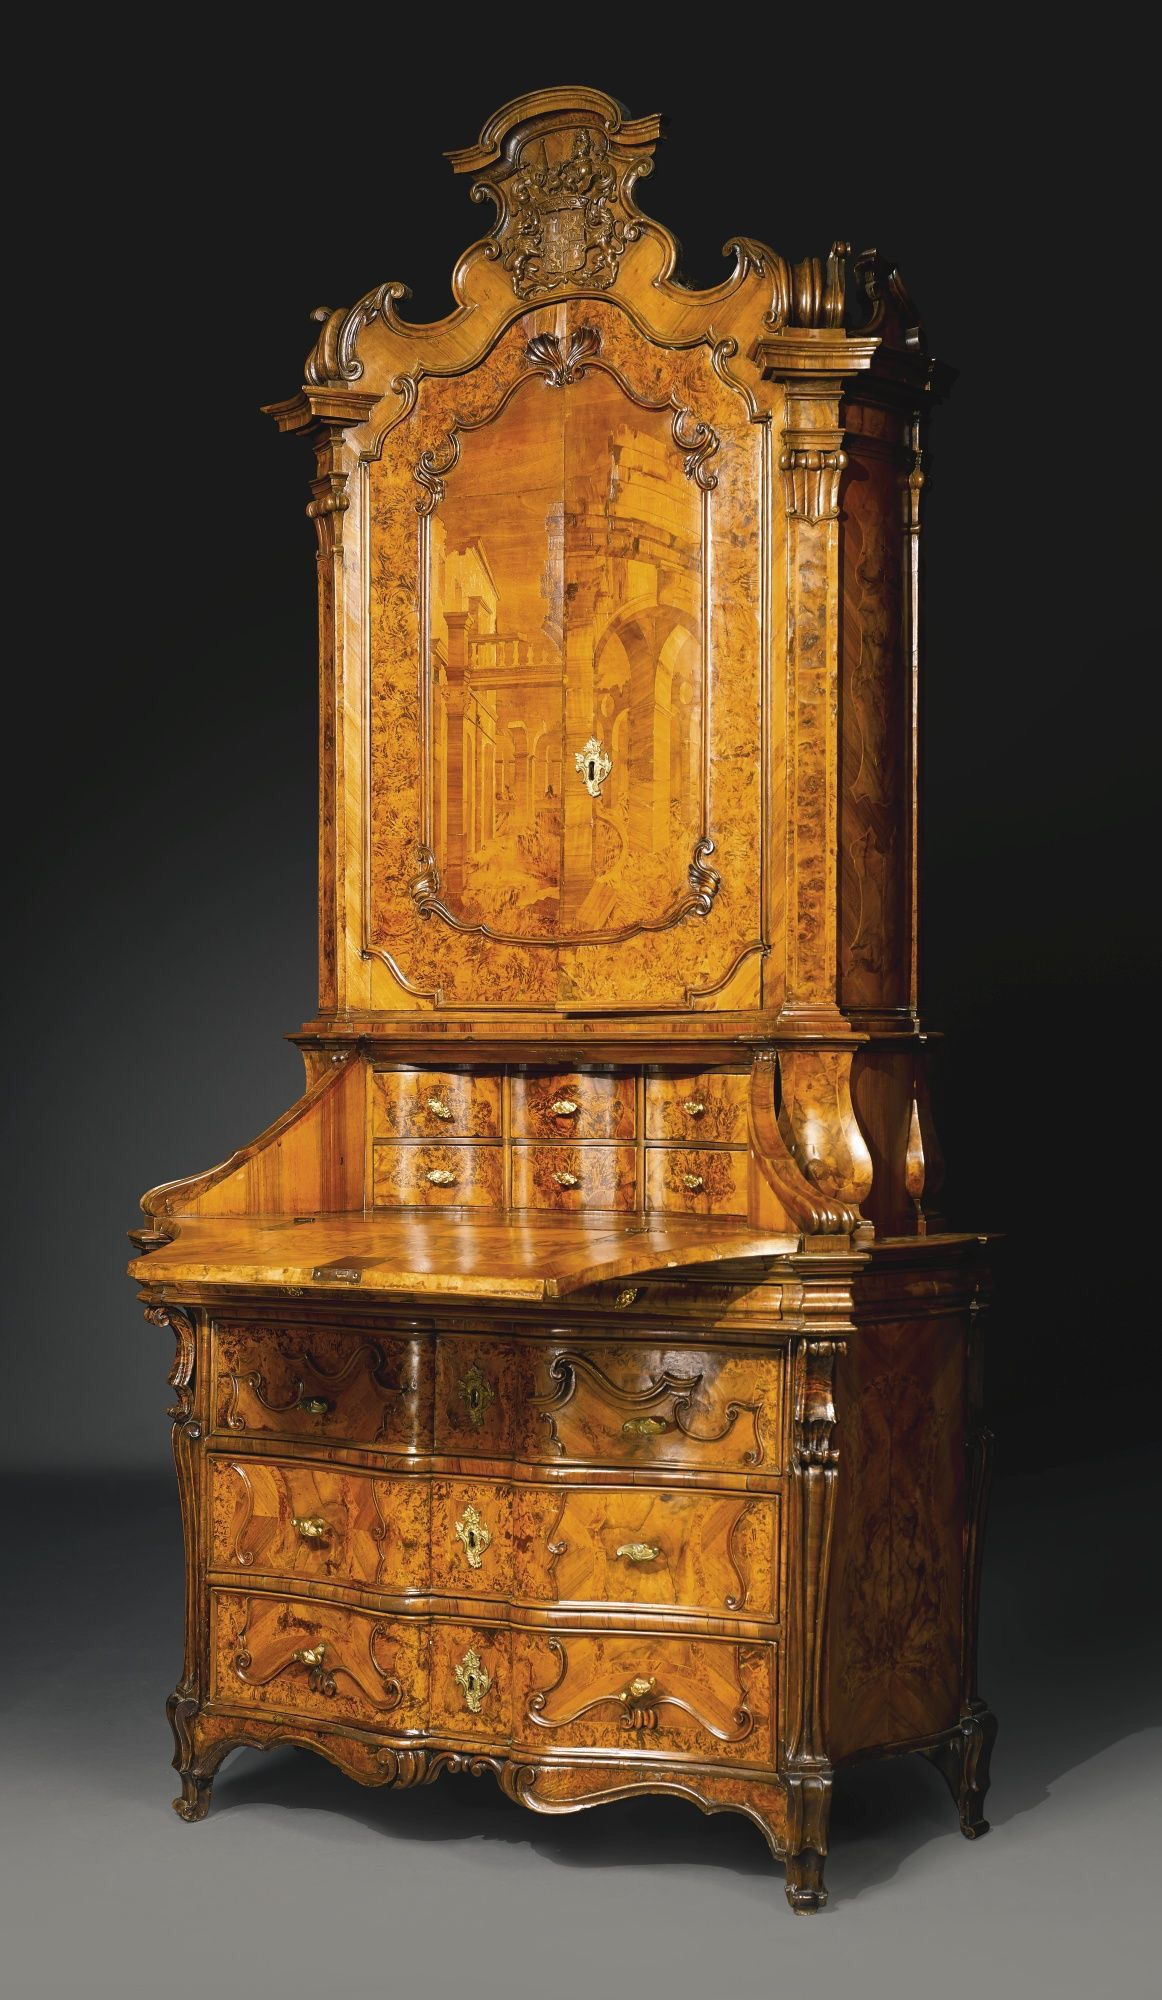 Elegant A North Italian Rococo Walnut, Burr Walnut And Marquetry Bureau Cabinet  Lombardy, Circa 1740 The Cresting With The Coat Of Arms Of The Zurlauben  Family.